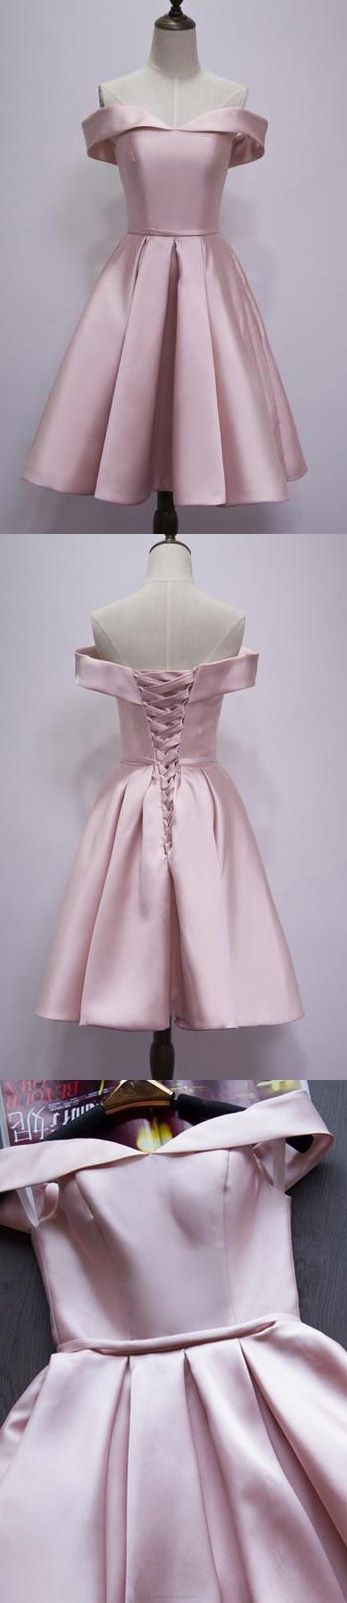 Prom Dresses 2017, Cheap Prom Dresses, Short Prom Dresses, Prom Dresses Cheap, 2017 Prom Dresses, Short Homecoming Dresses, Cheap Homecoming Dresses, Short Prom Dresses Cheap, Homecoming Dresses Cheap, Homecoming Dresses 2017, Sleeveless Party Dresses, Champagne Sleeveless Homecoming Dresses, Short Party Dresses, 2017 Homecoming Dress Cheap Pearl Pink Short Prom Dress Party Dress